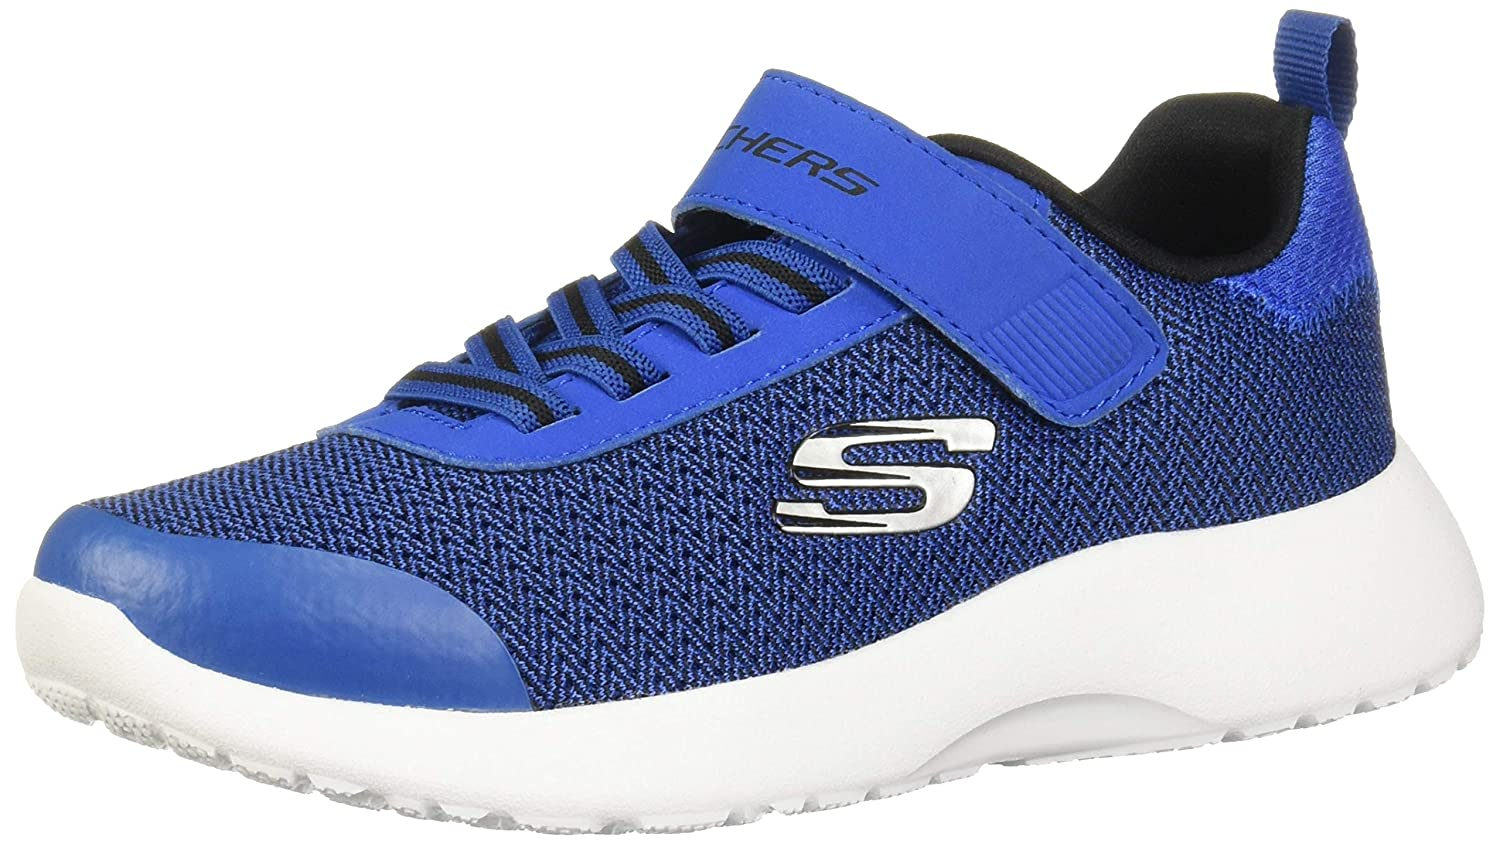 Skechers Kid's Dynamight Ultra Torque Boys Cross Training Shoes Royal/Black